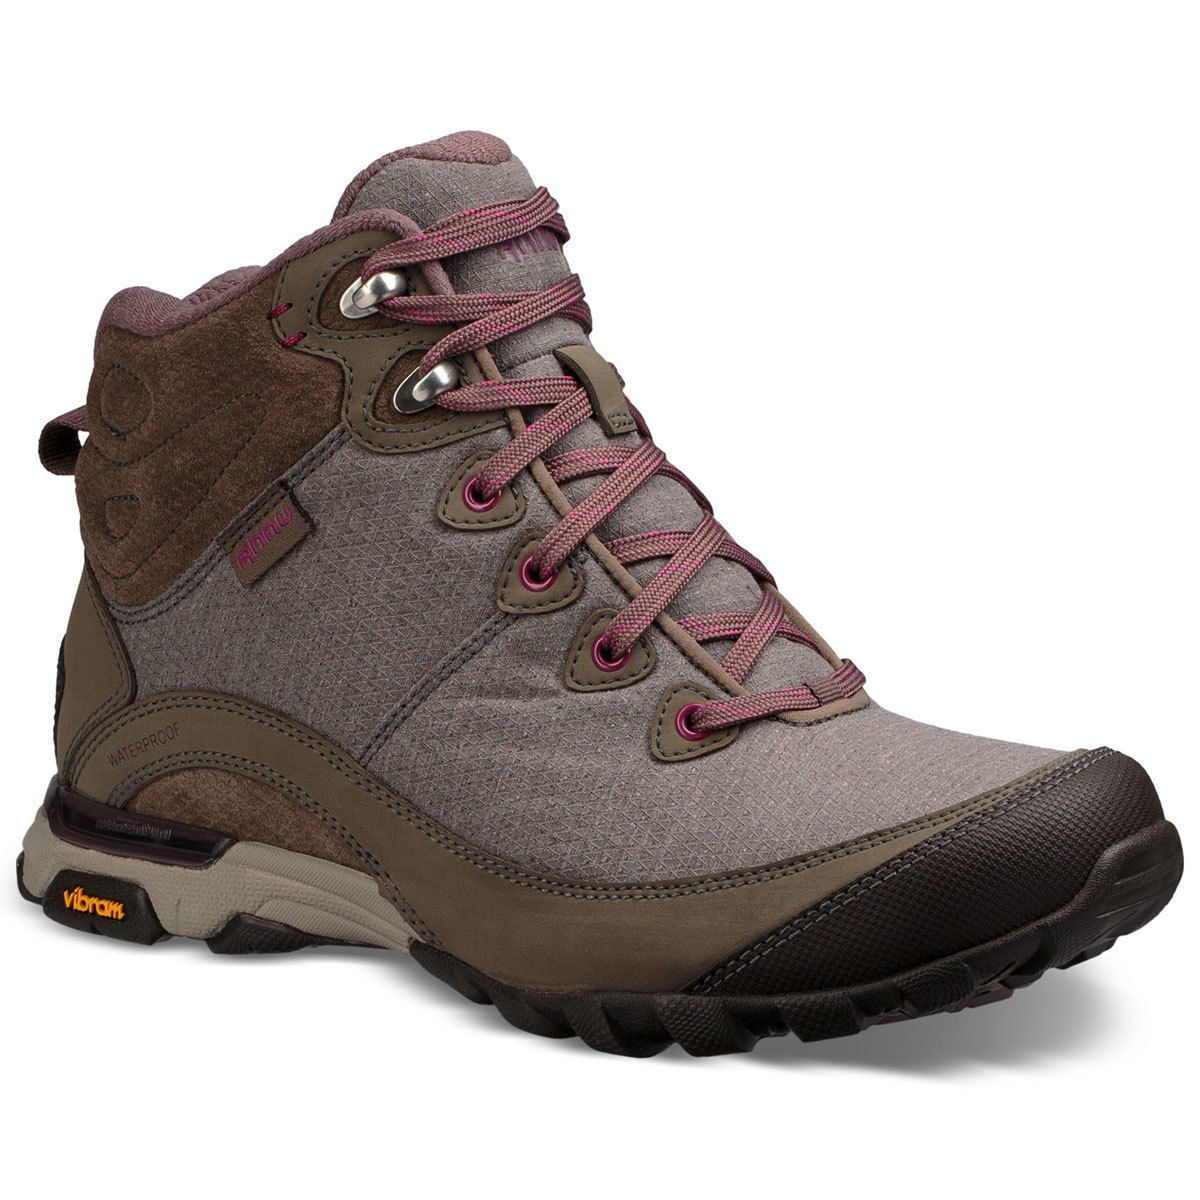 Ahnu Women's Sugarpine Ii Mid Waterproof Hiking Boots - Brown - Size 7